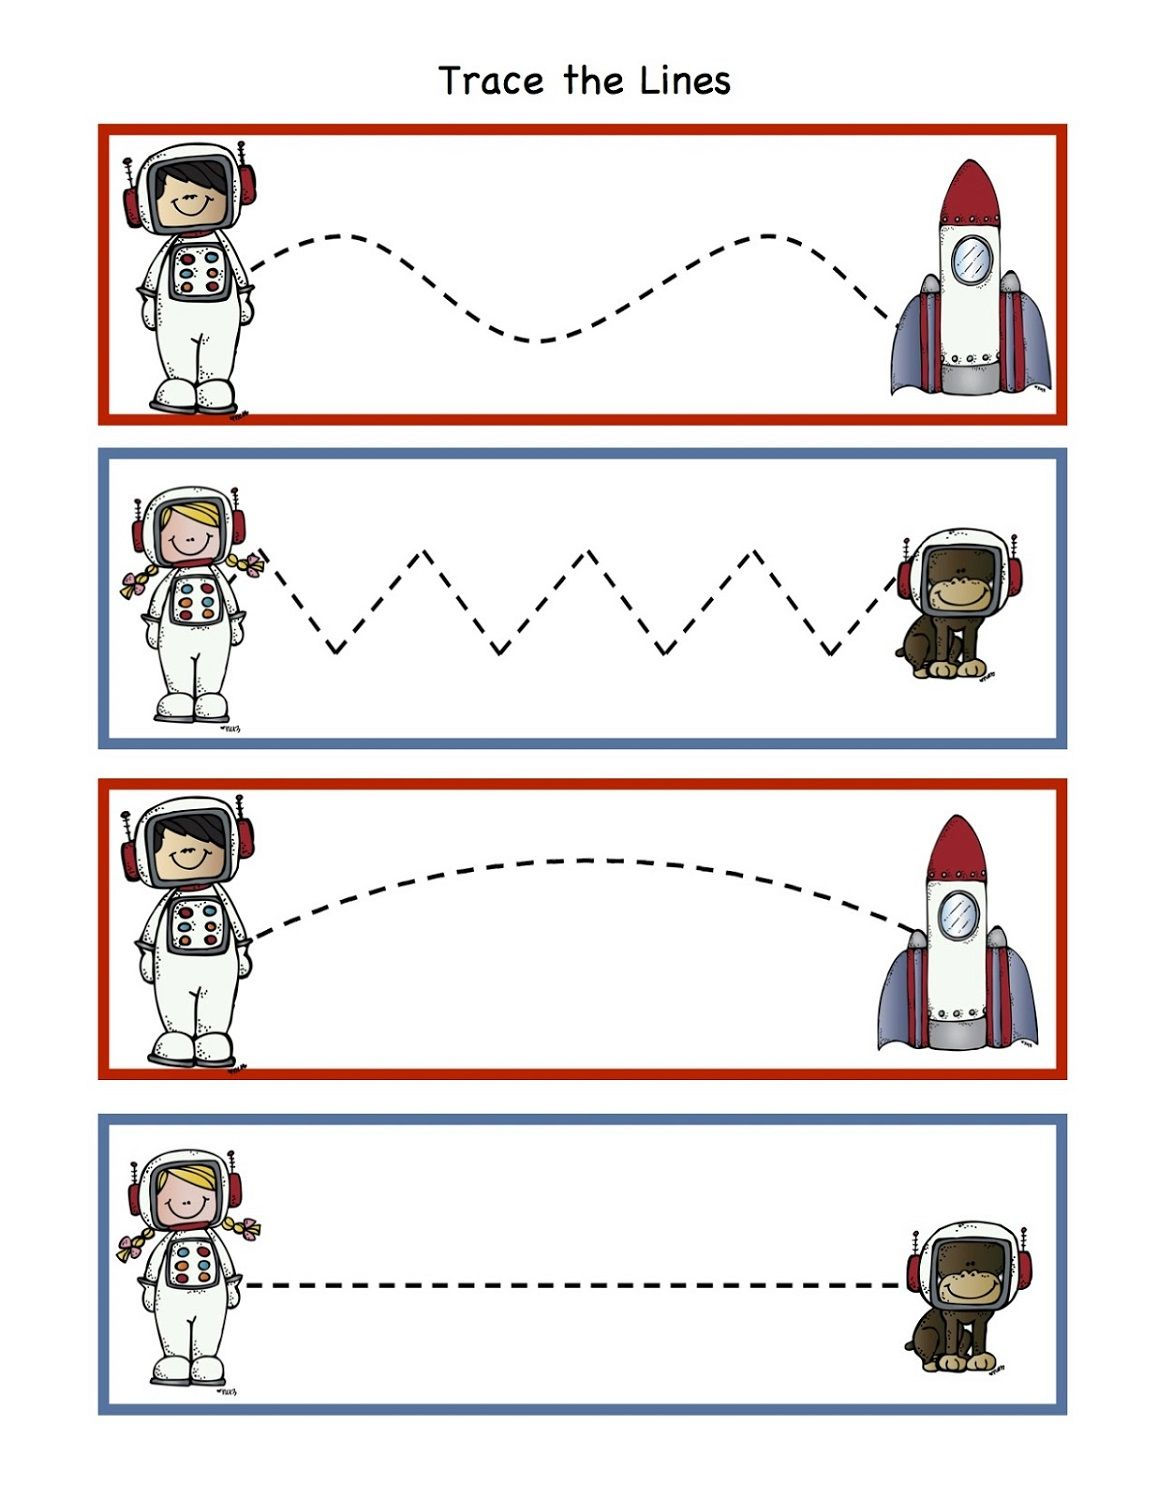 outer space worksheets for kids trace | Space preschool ...